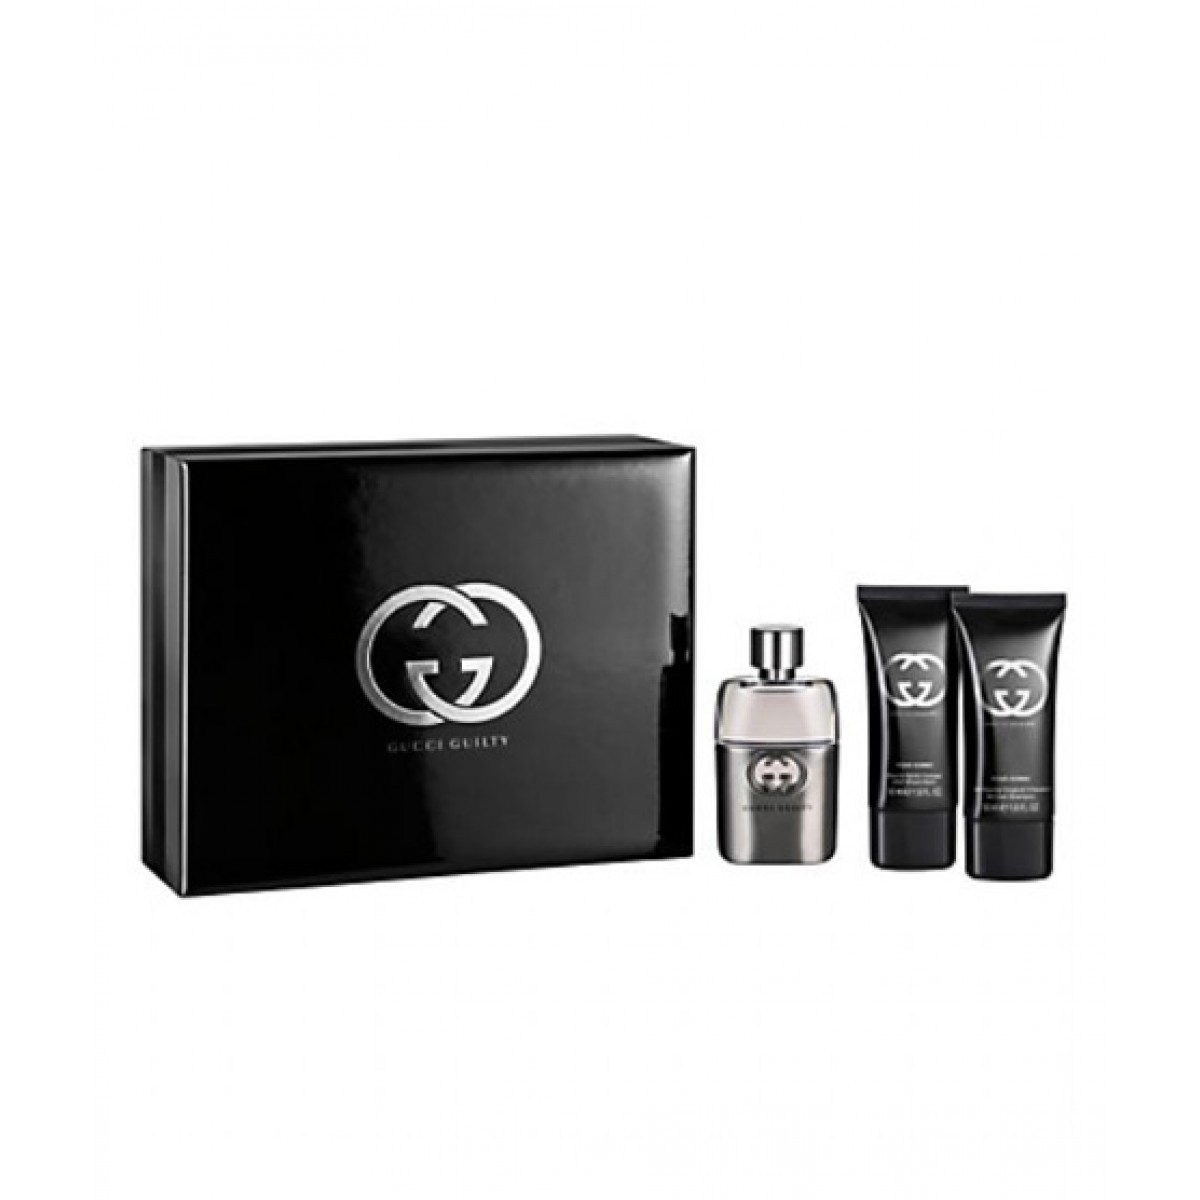 54b4690fe Gucci Guilty 3 Piece Gift Set For Men Price in Pakistan | Buy Gucci Guilty  3 Piece Gift Set | iShopping.pk